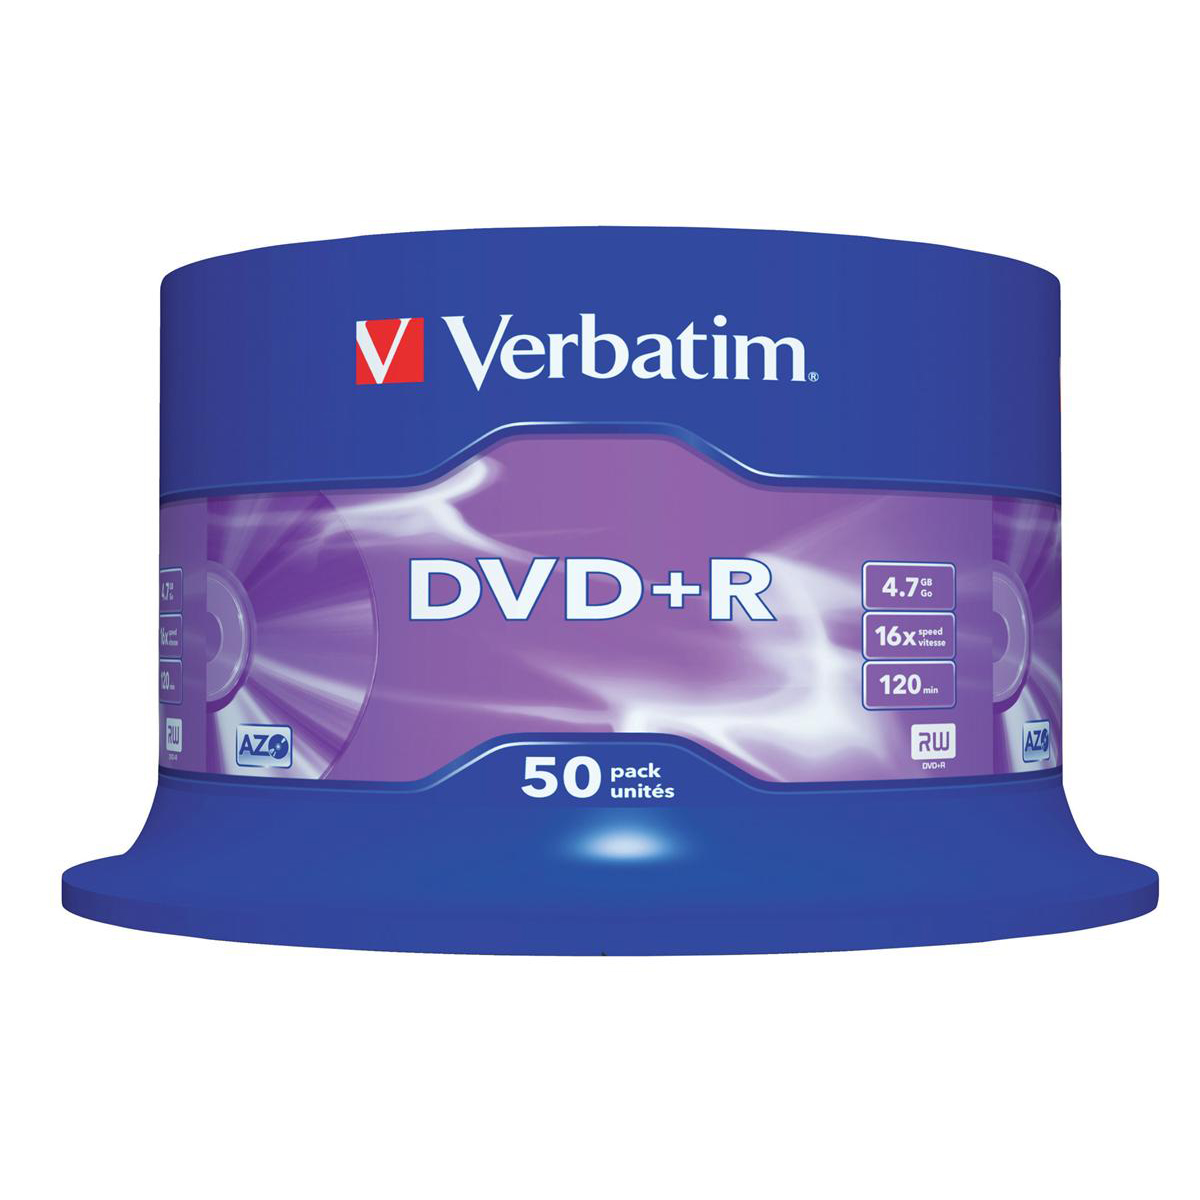 Digital versatile disks DVDs Verbatim DVD+R Recordable Disk Write-once Spindle 16x Speed 120min 4.7Gb Ref 43550 Pack 50